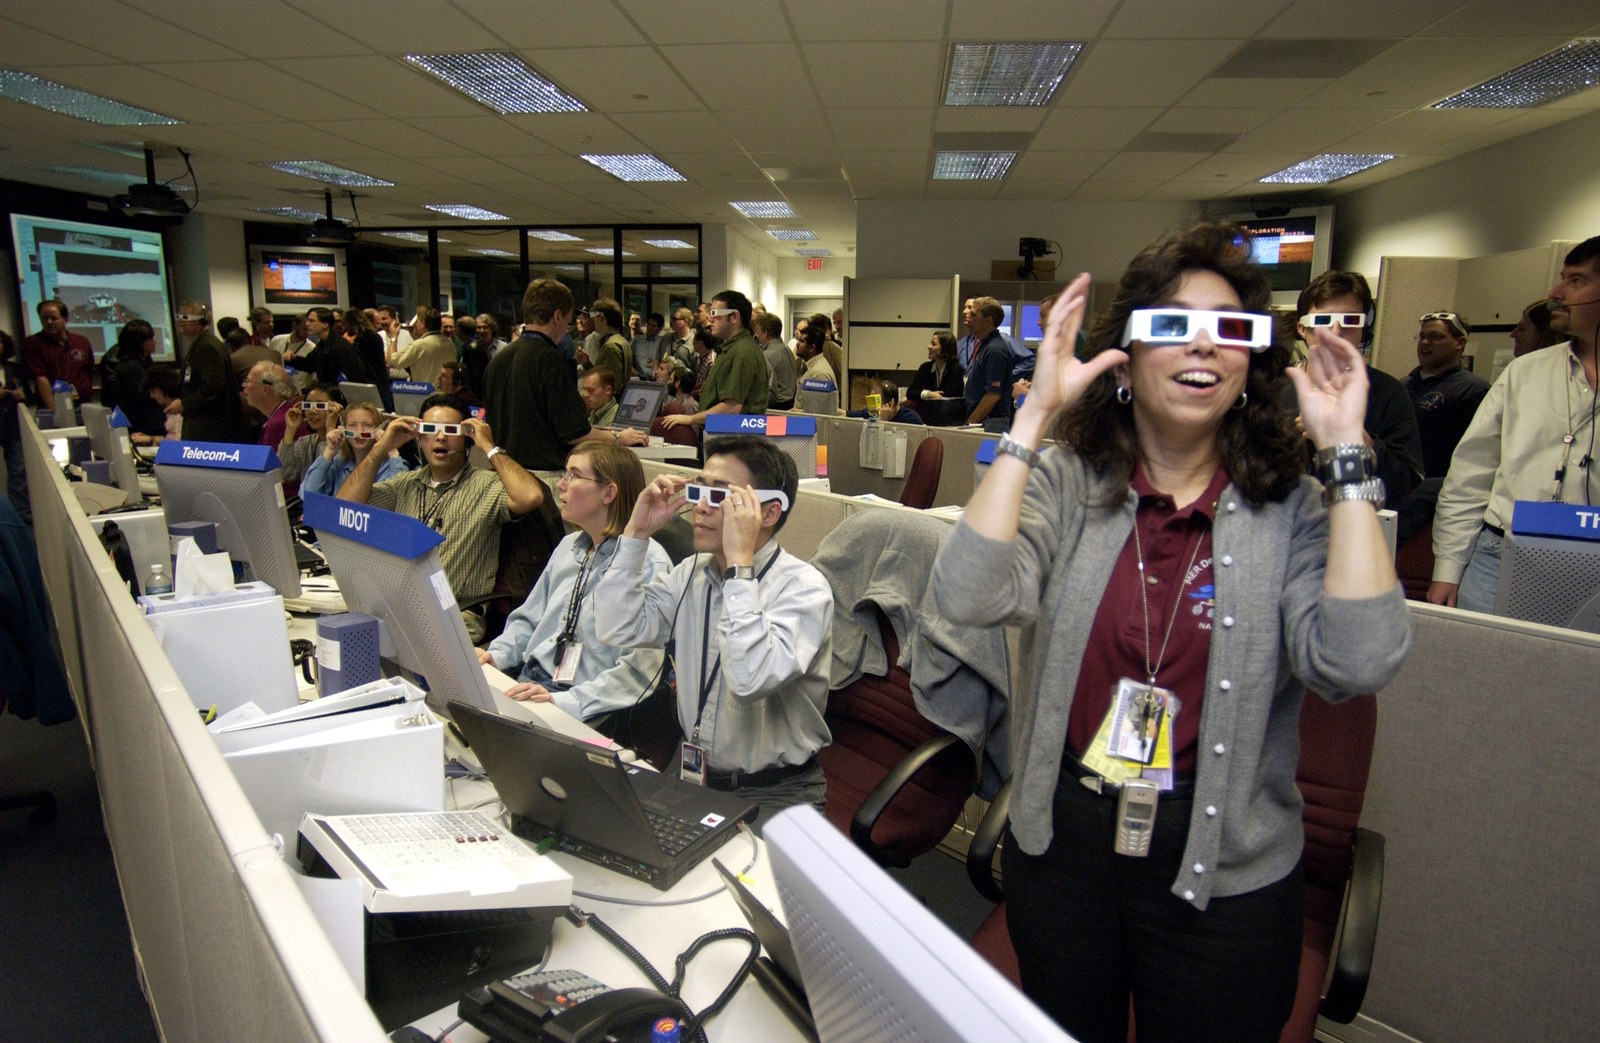 A crowd of excited men and women who work on the Mars Exploration Rover mission are wearing white paper 3-D glasses with red and blue lenses to view some of the Spirit rover's first three-dimensional images.  Some are seated behind console work stations, while others are standing, trying to get the best view. 	Team members viewing some of Spirit's first 3-D images